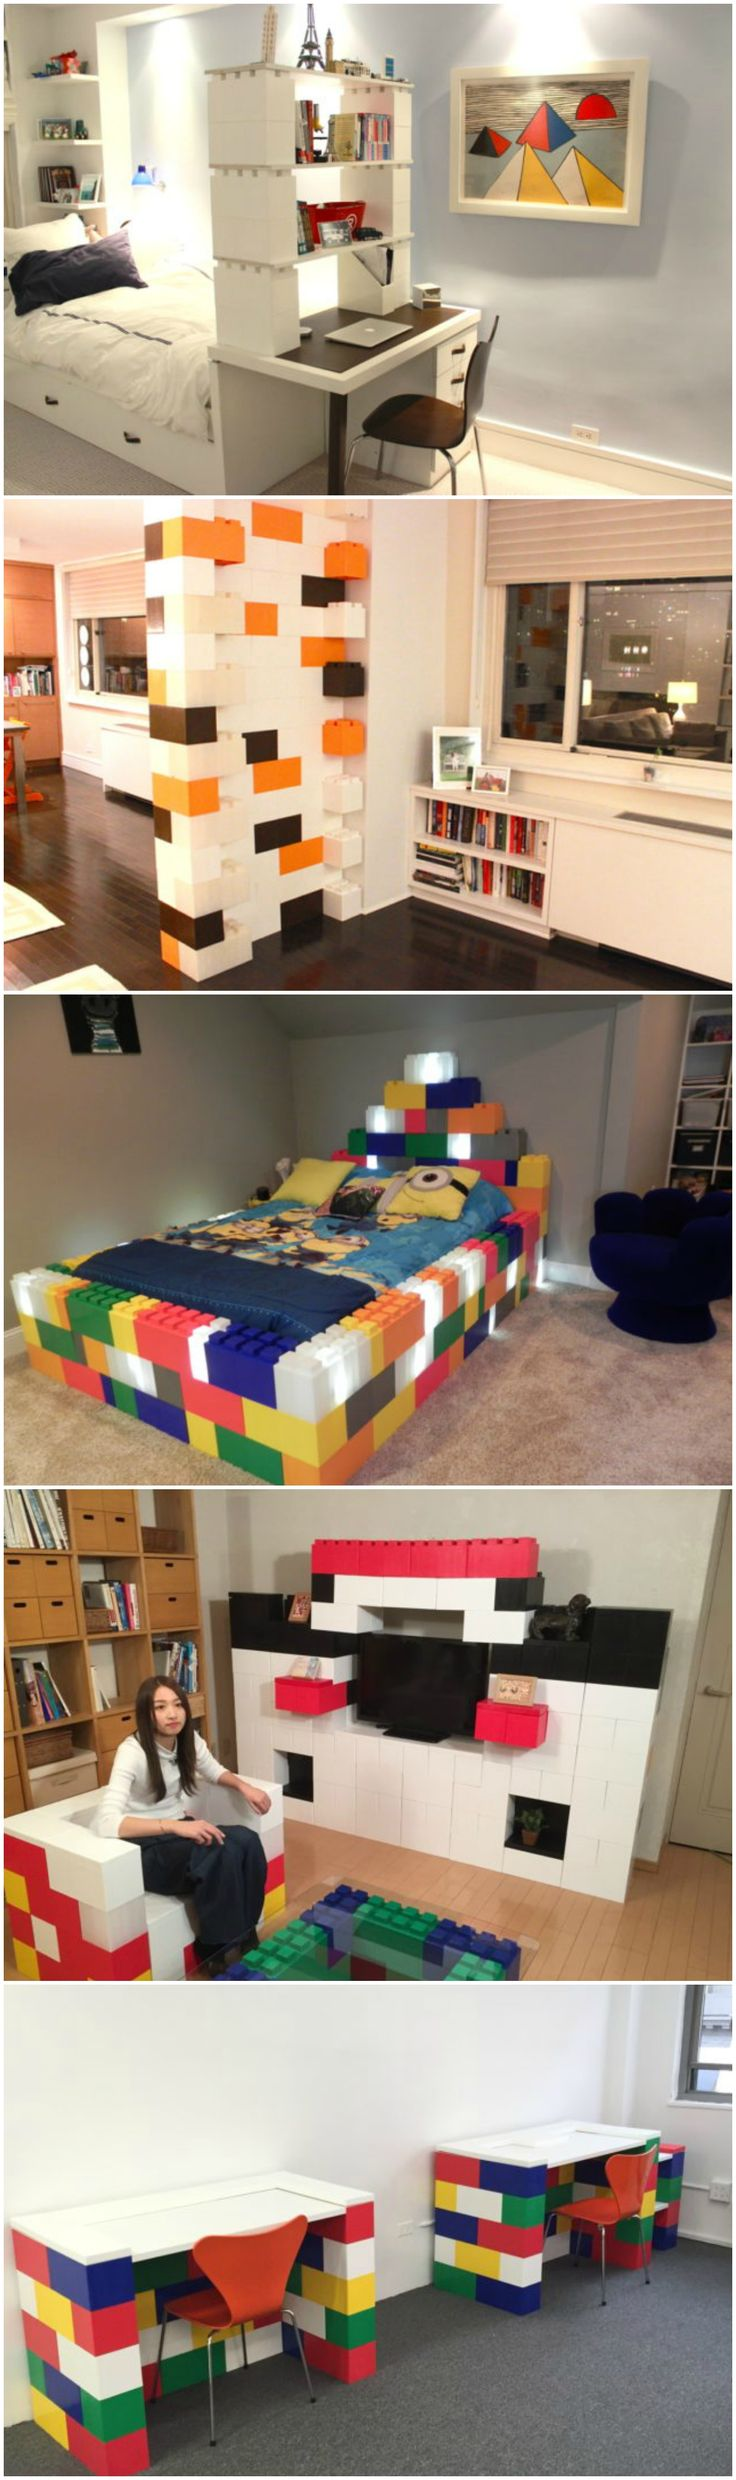 Build Amazing Things With EverBlock Systems. Everblock SystemPlayroom  OrganizationOrganizingKids Bedroom ChairsBedroom IdeasLarge ...